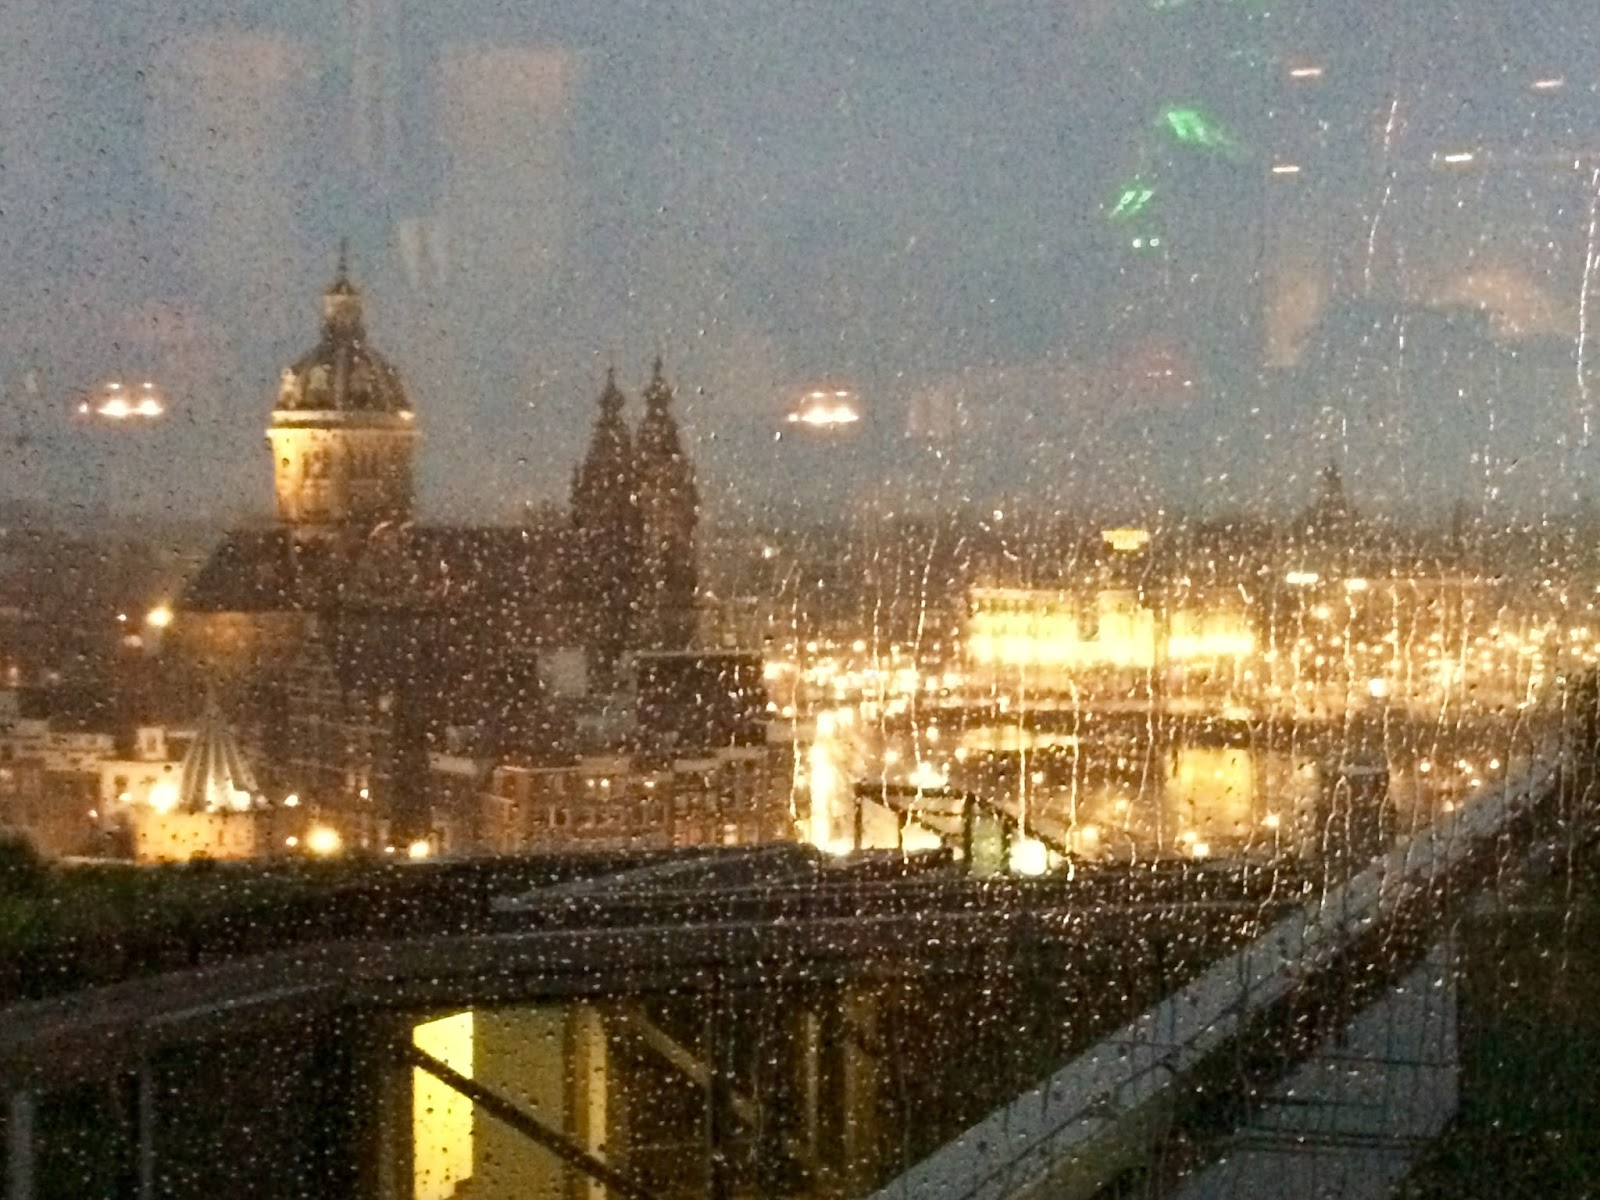 Amsterdam Sky Garden in the Rain